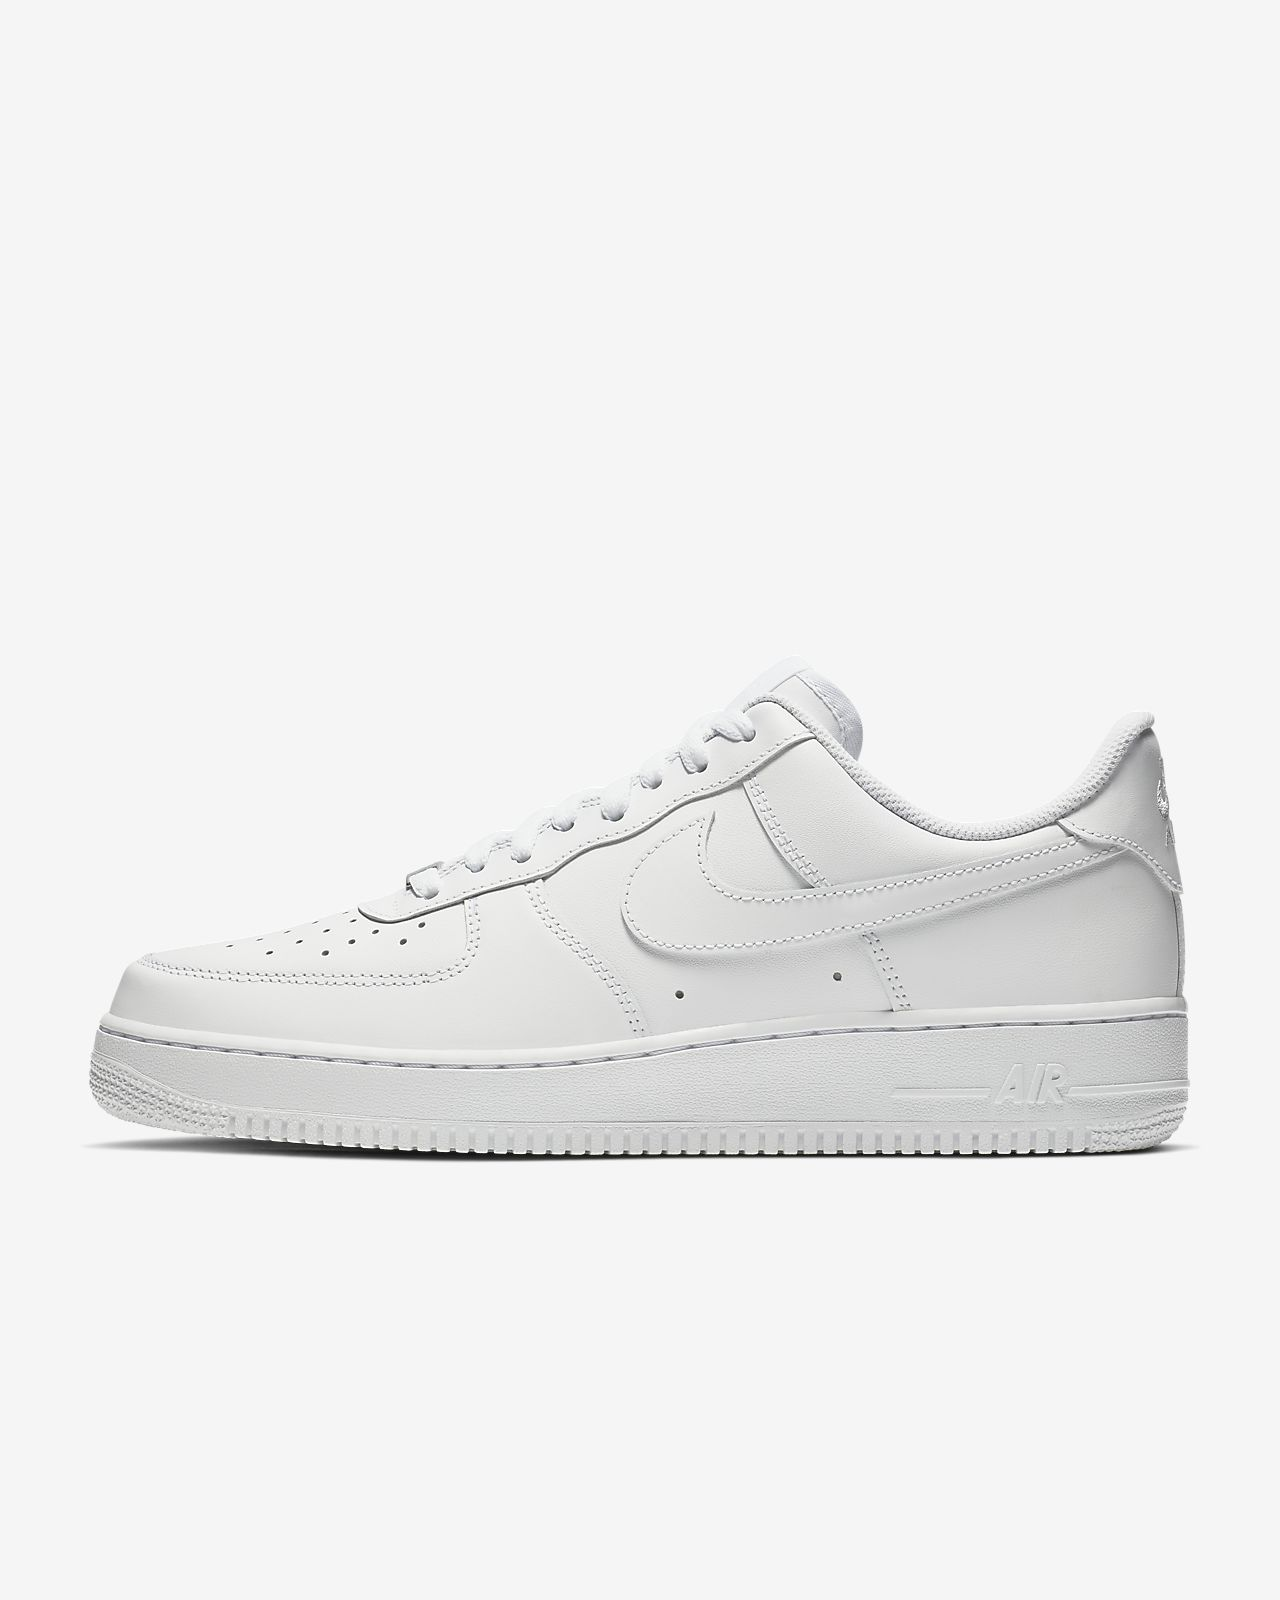 abd5ab7a Nike Air Force 1 '07 Men's Shoe